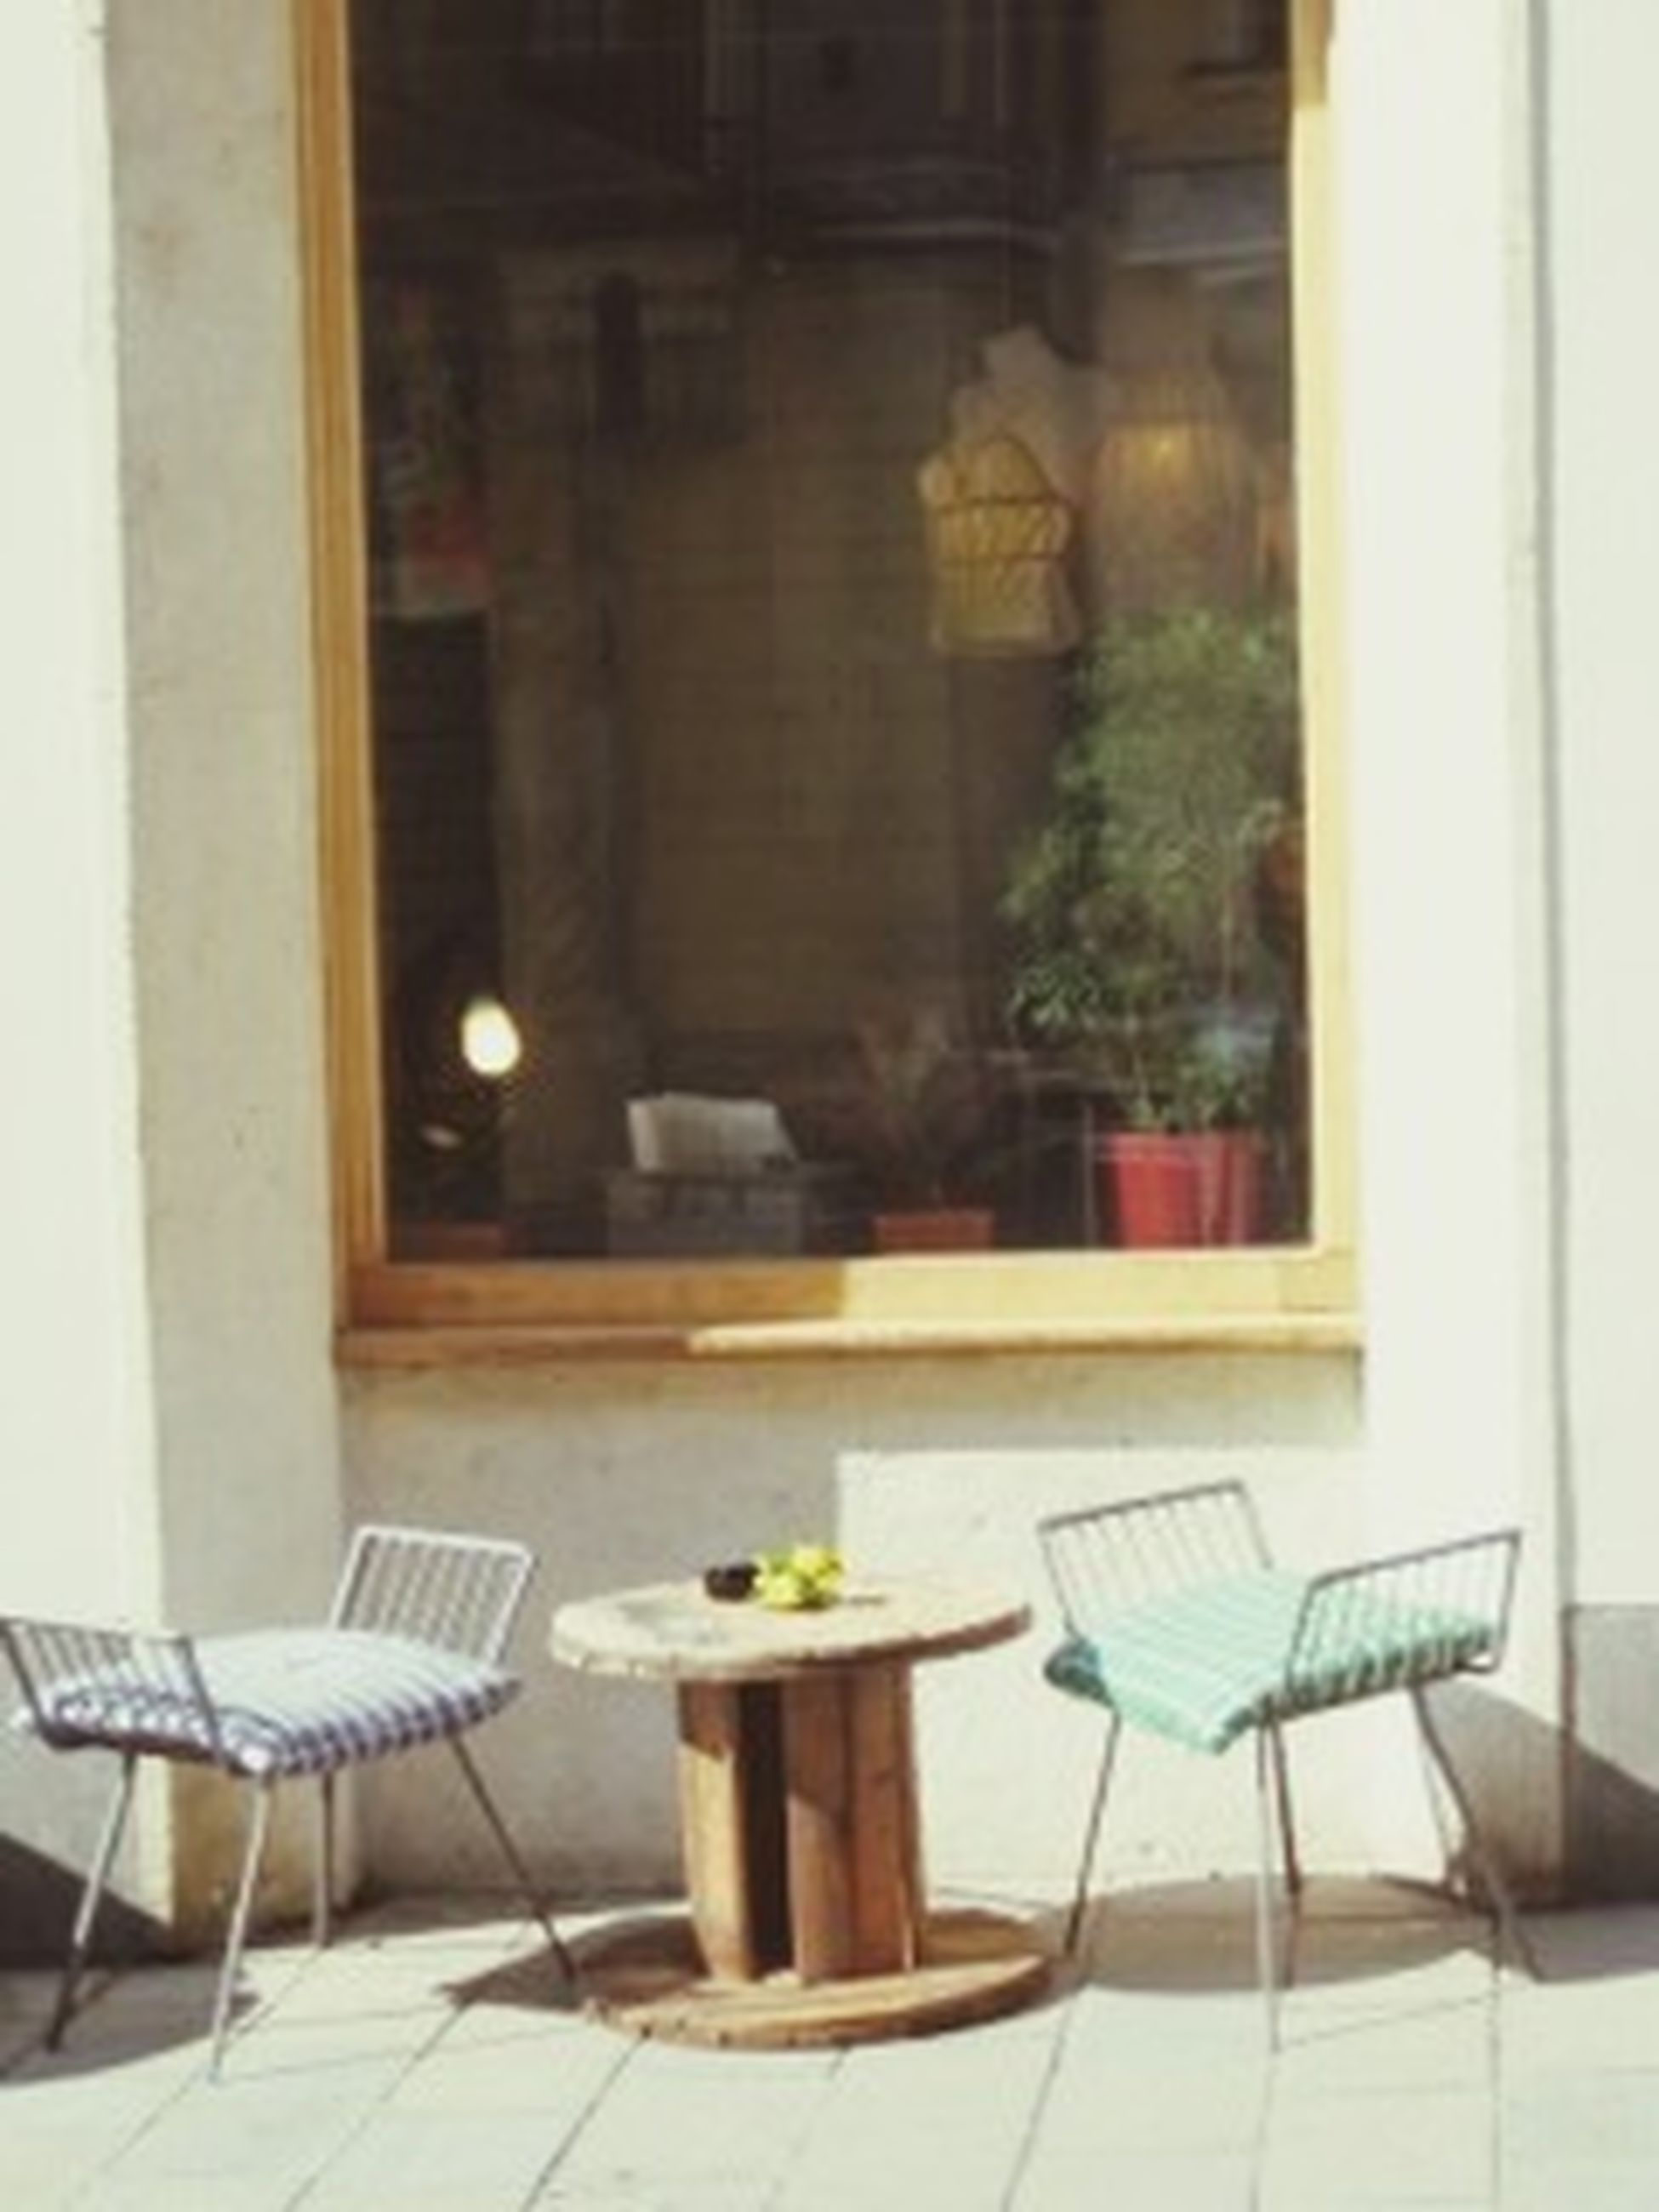 chair, indoors, table, absence, empty, furniture, window, restaurant, potted plant, home interior, dining table, place setting, seat, sidewalk cafe, bench, architecture, vase, living room, relaxation, sofa